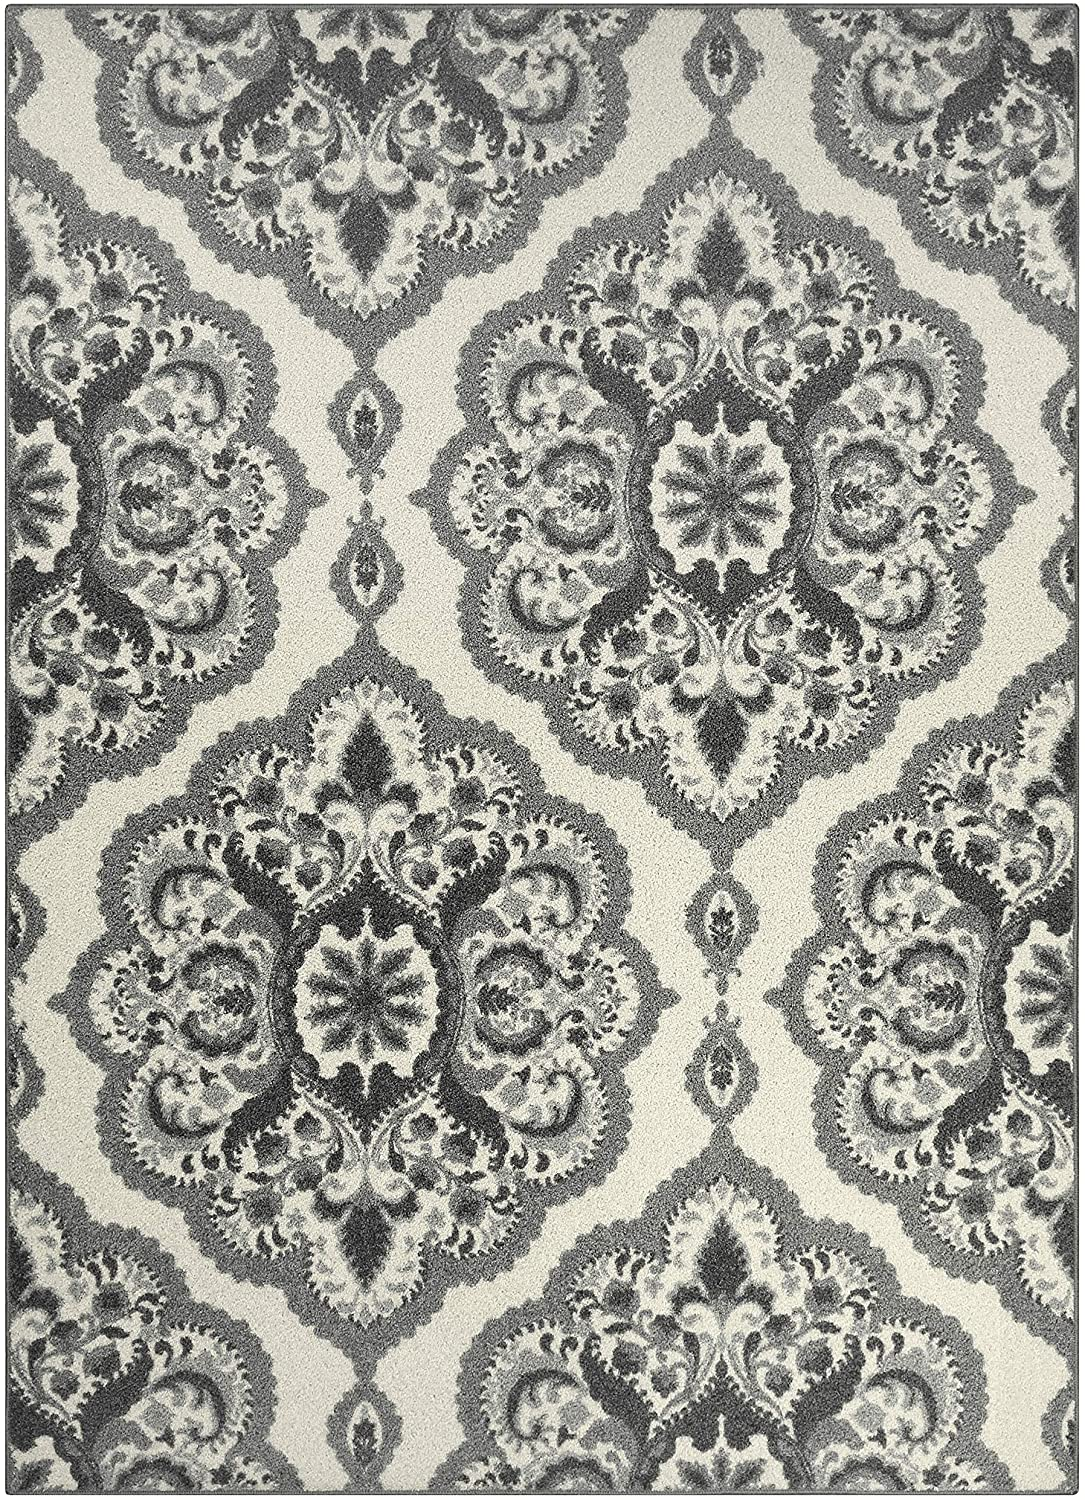 sold out Maples Rugs Vivian Medallion Area Genuine Free Shipping for Room Living Bedroom